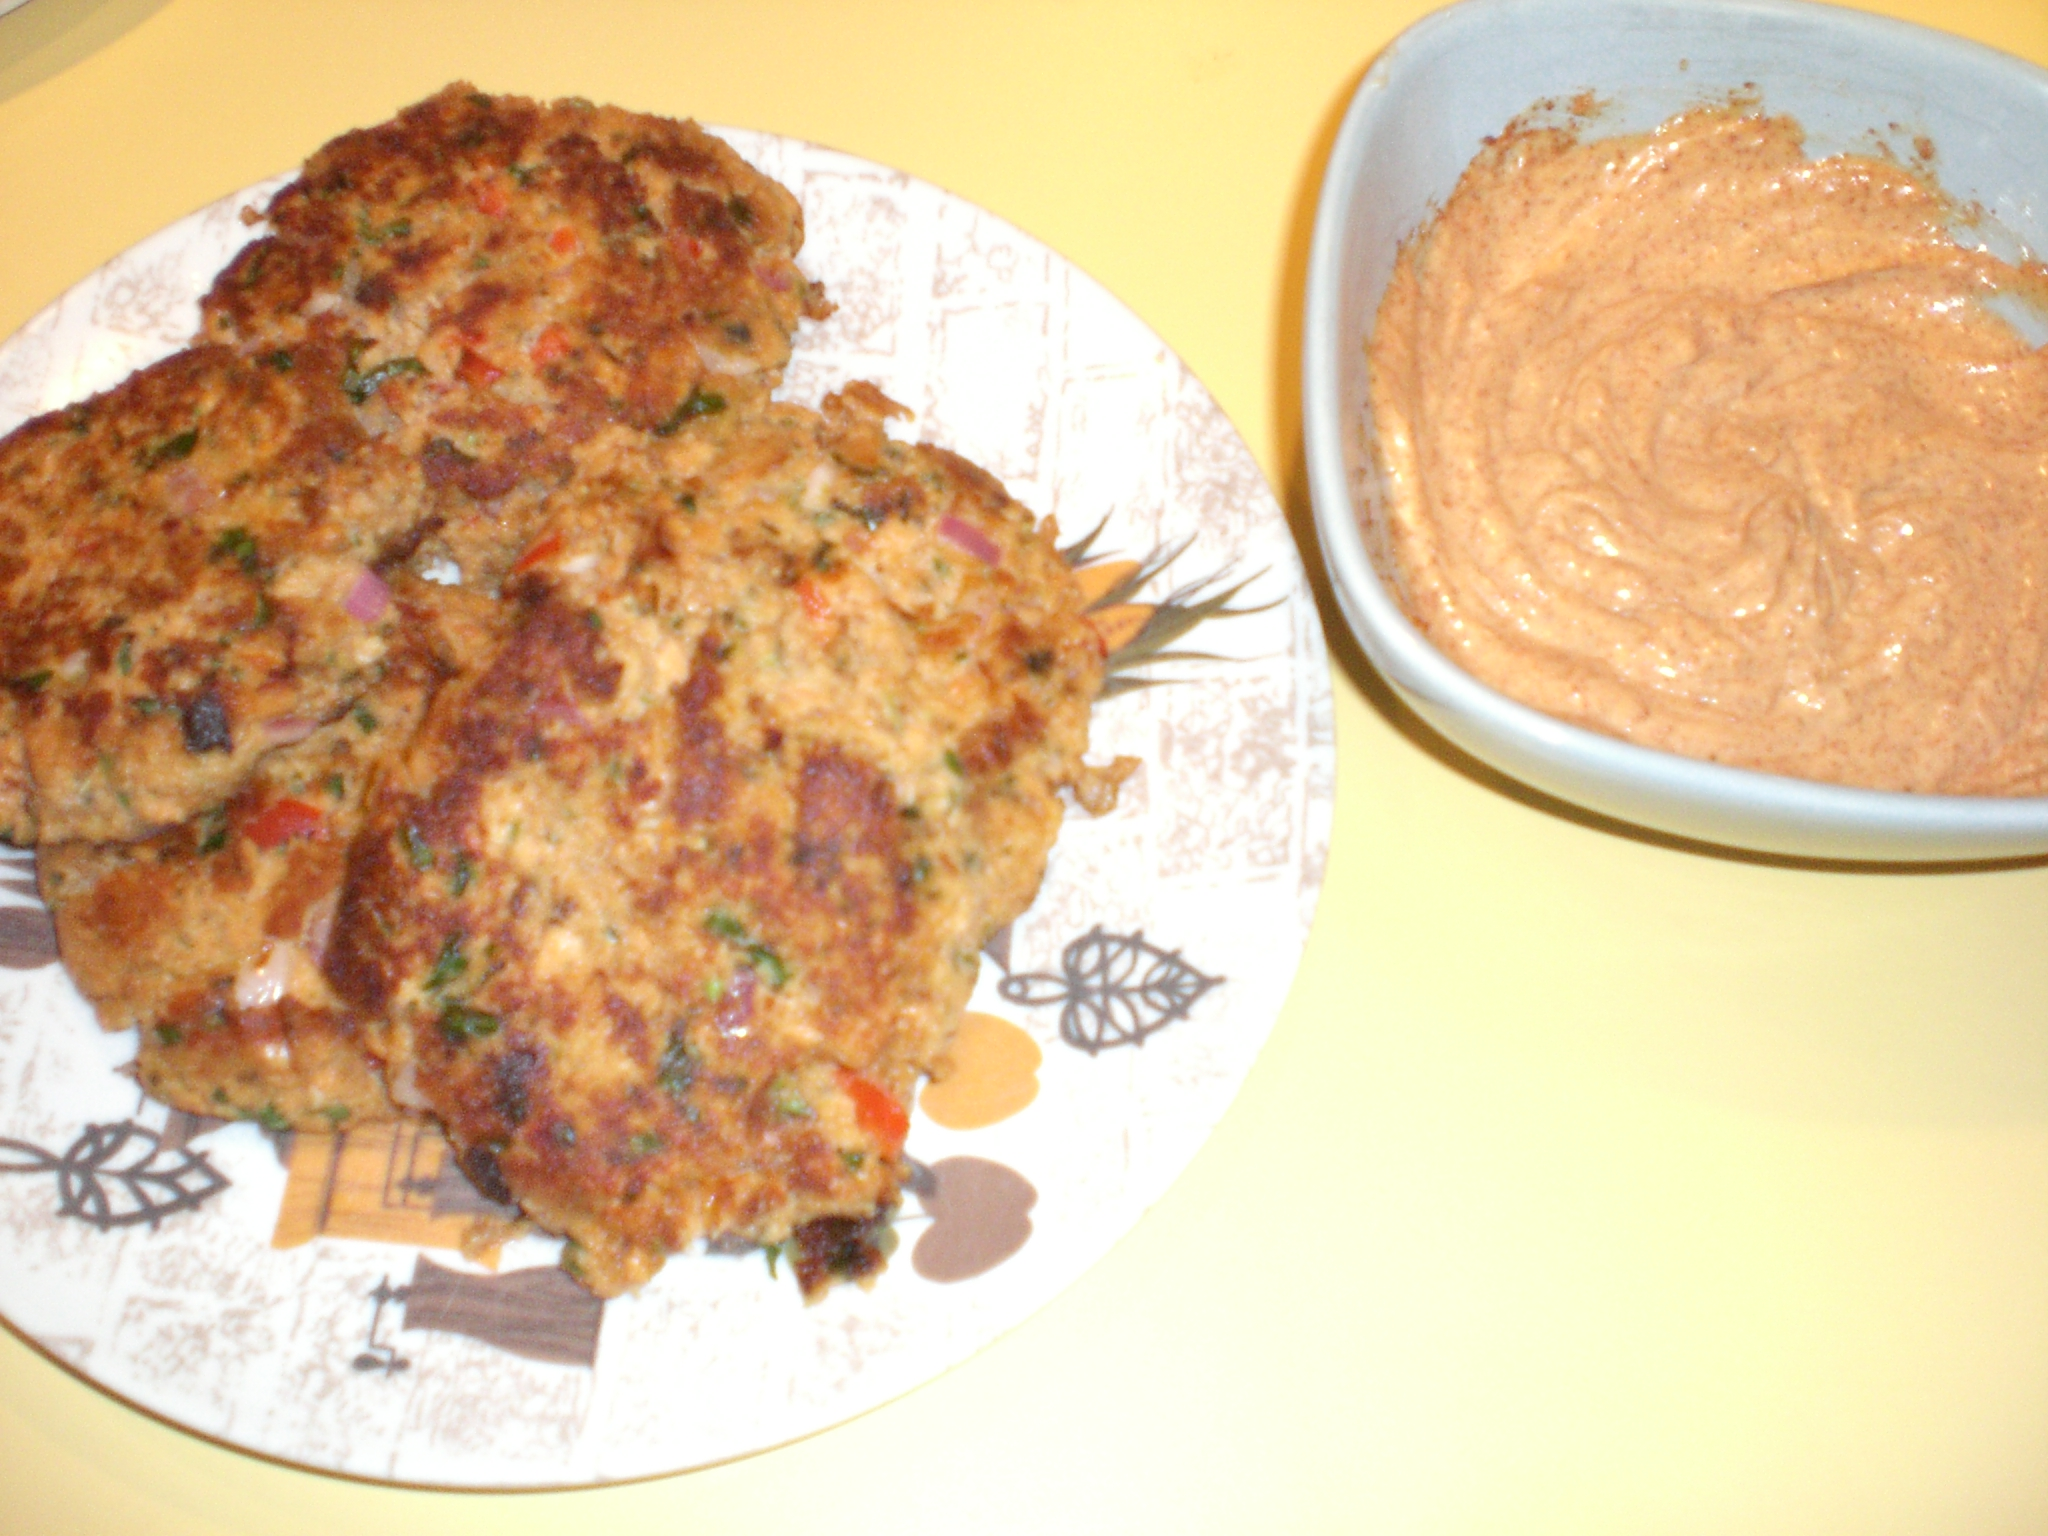 Cilantro Lime Salmon Cakes with Chipotle Mayo